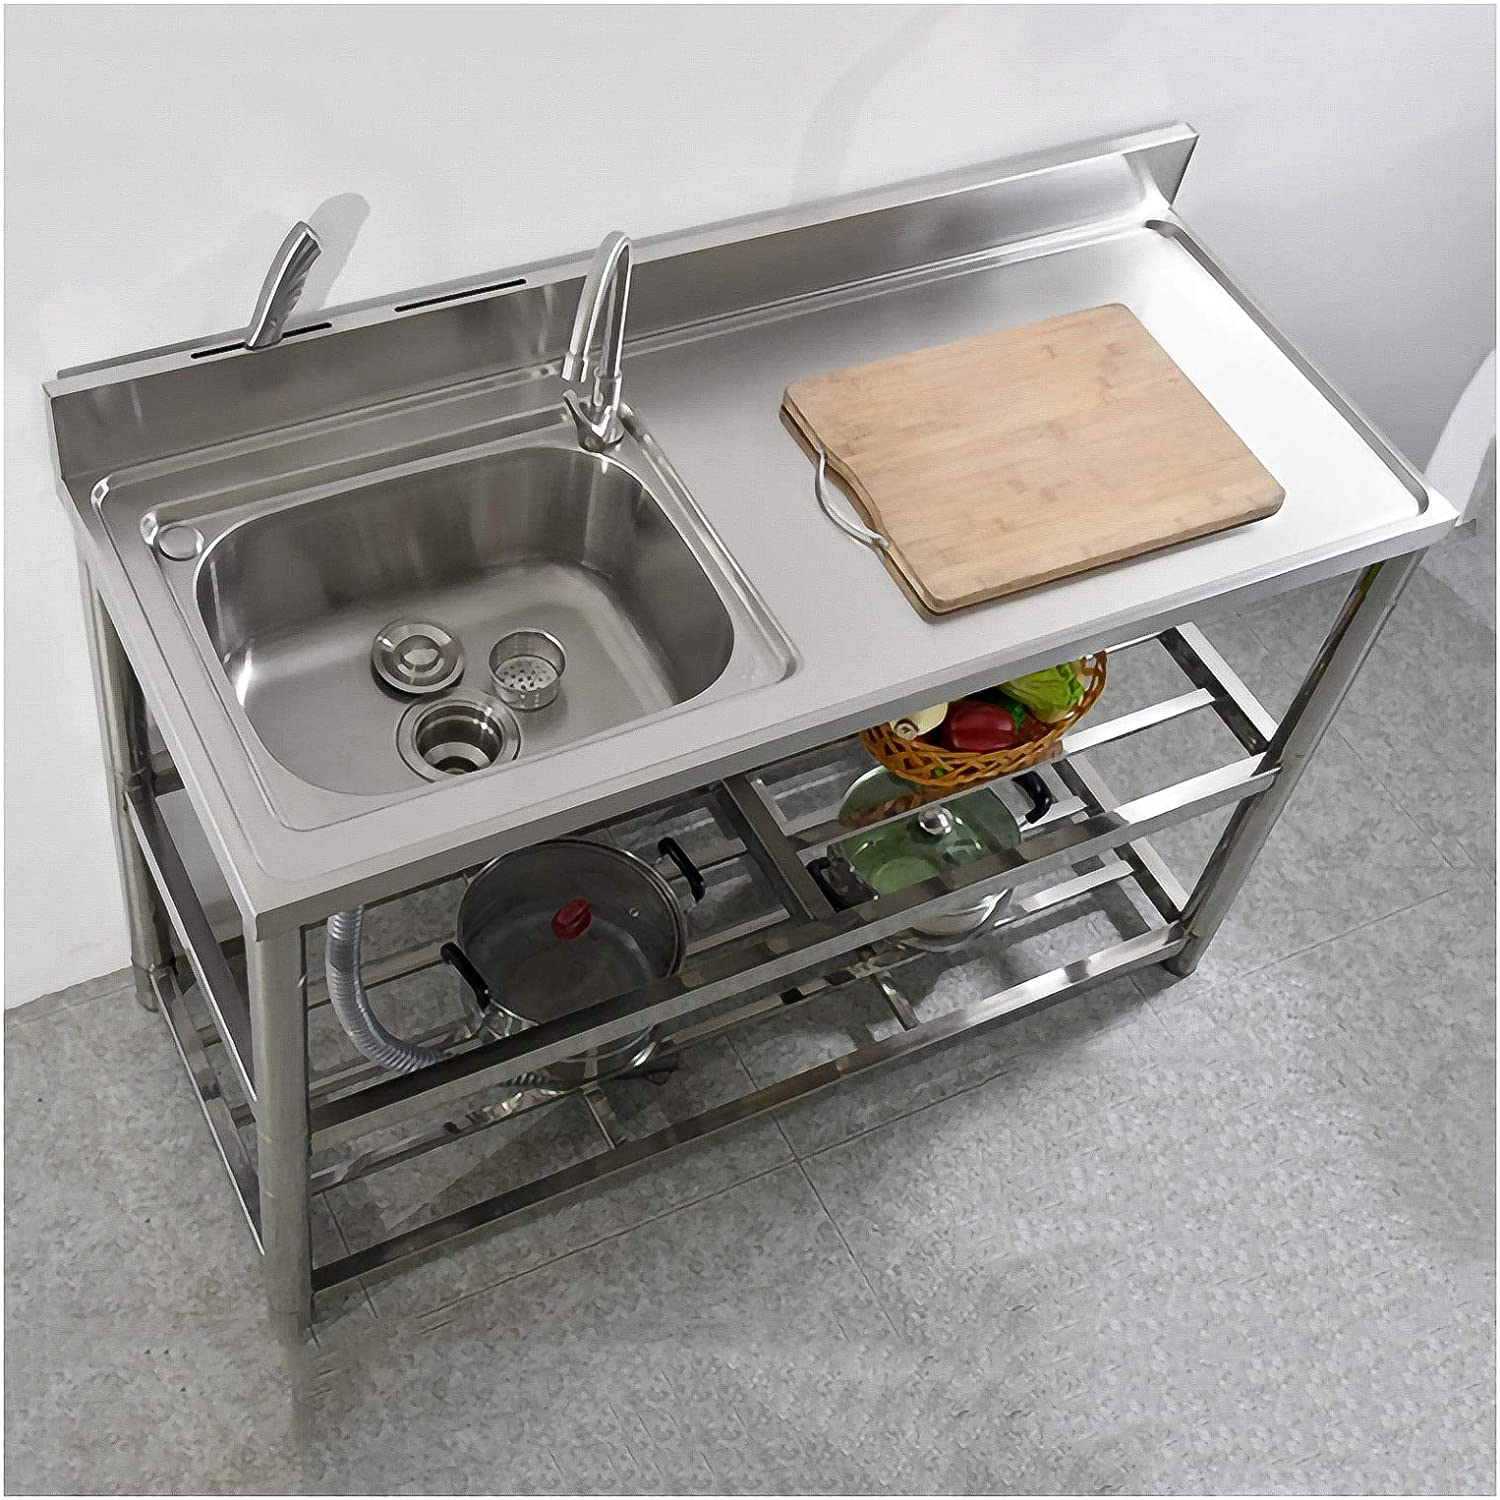 outdoor sink caddy 304 stainless steel